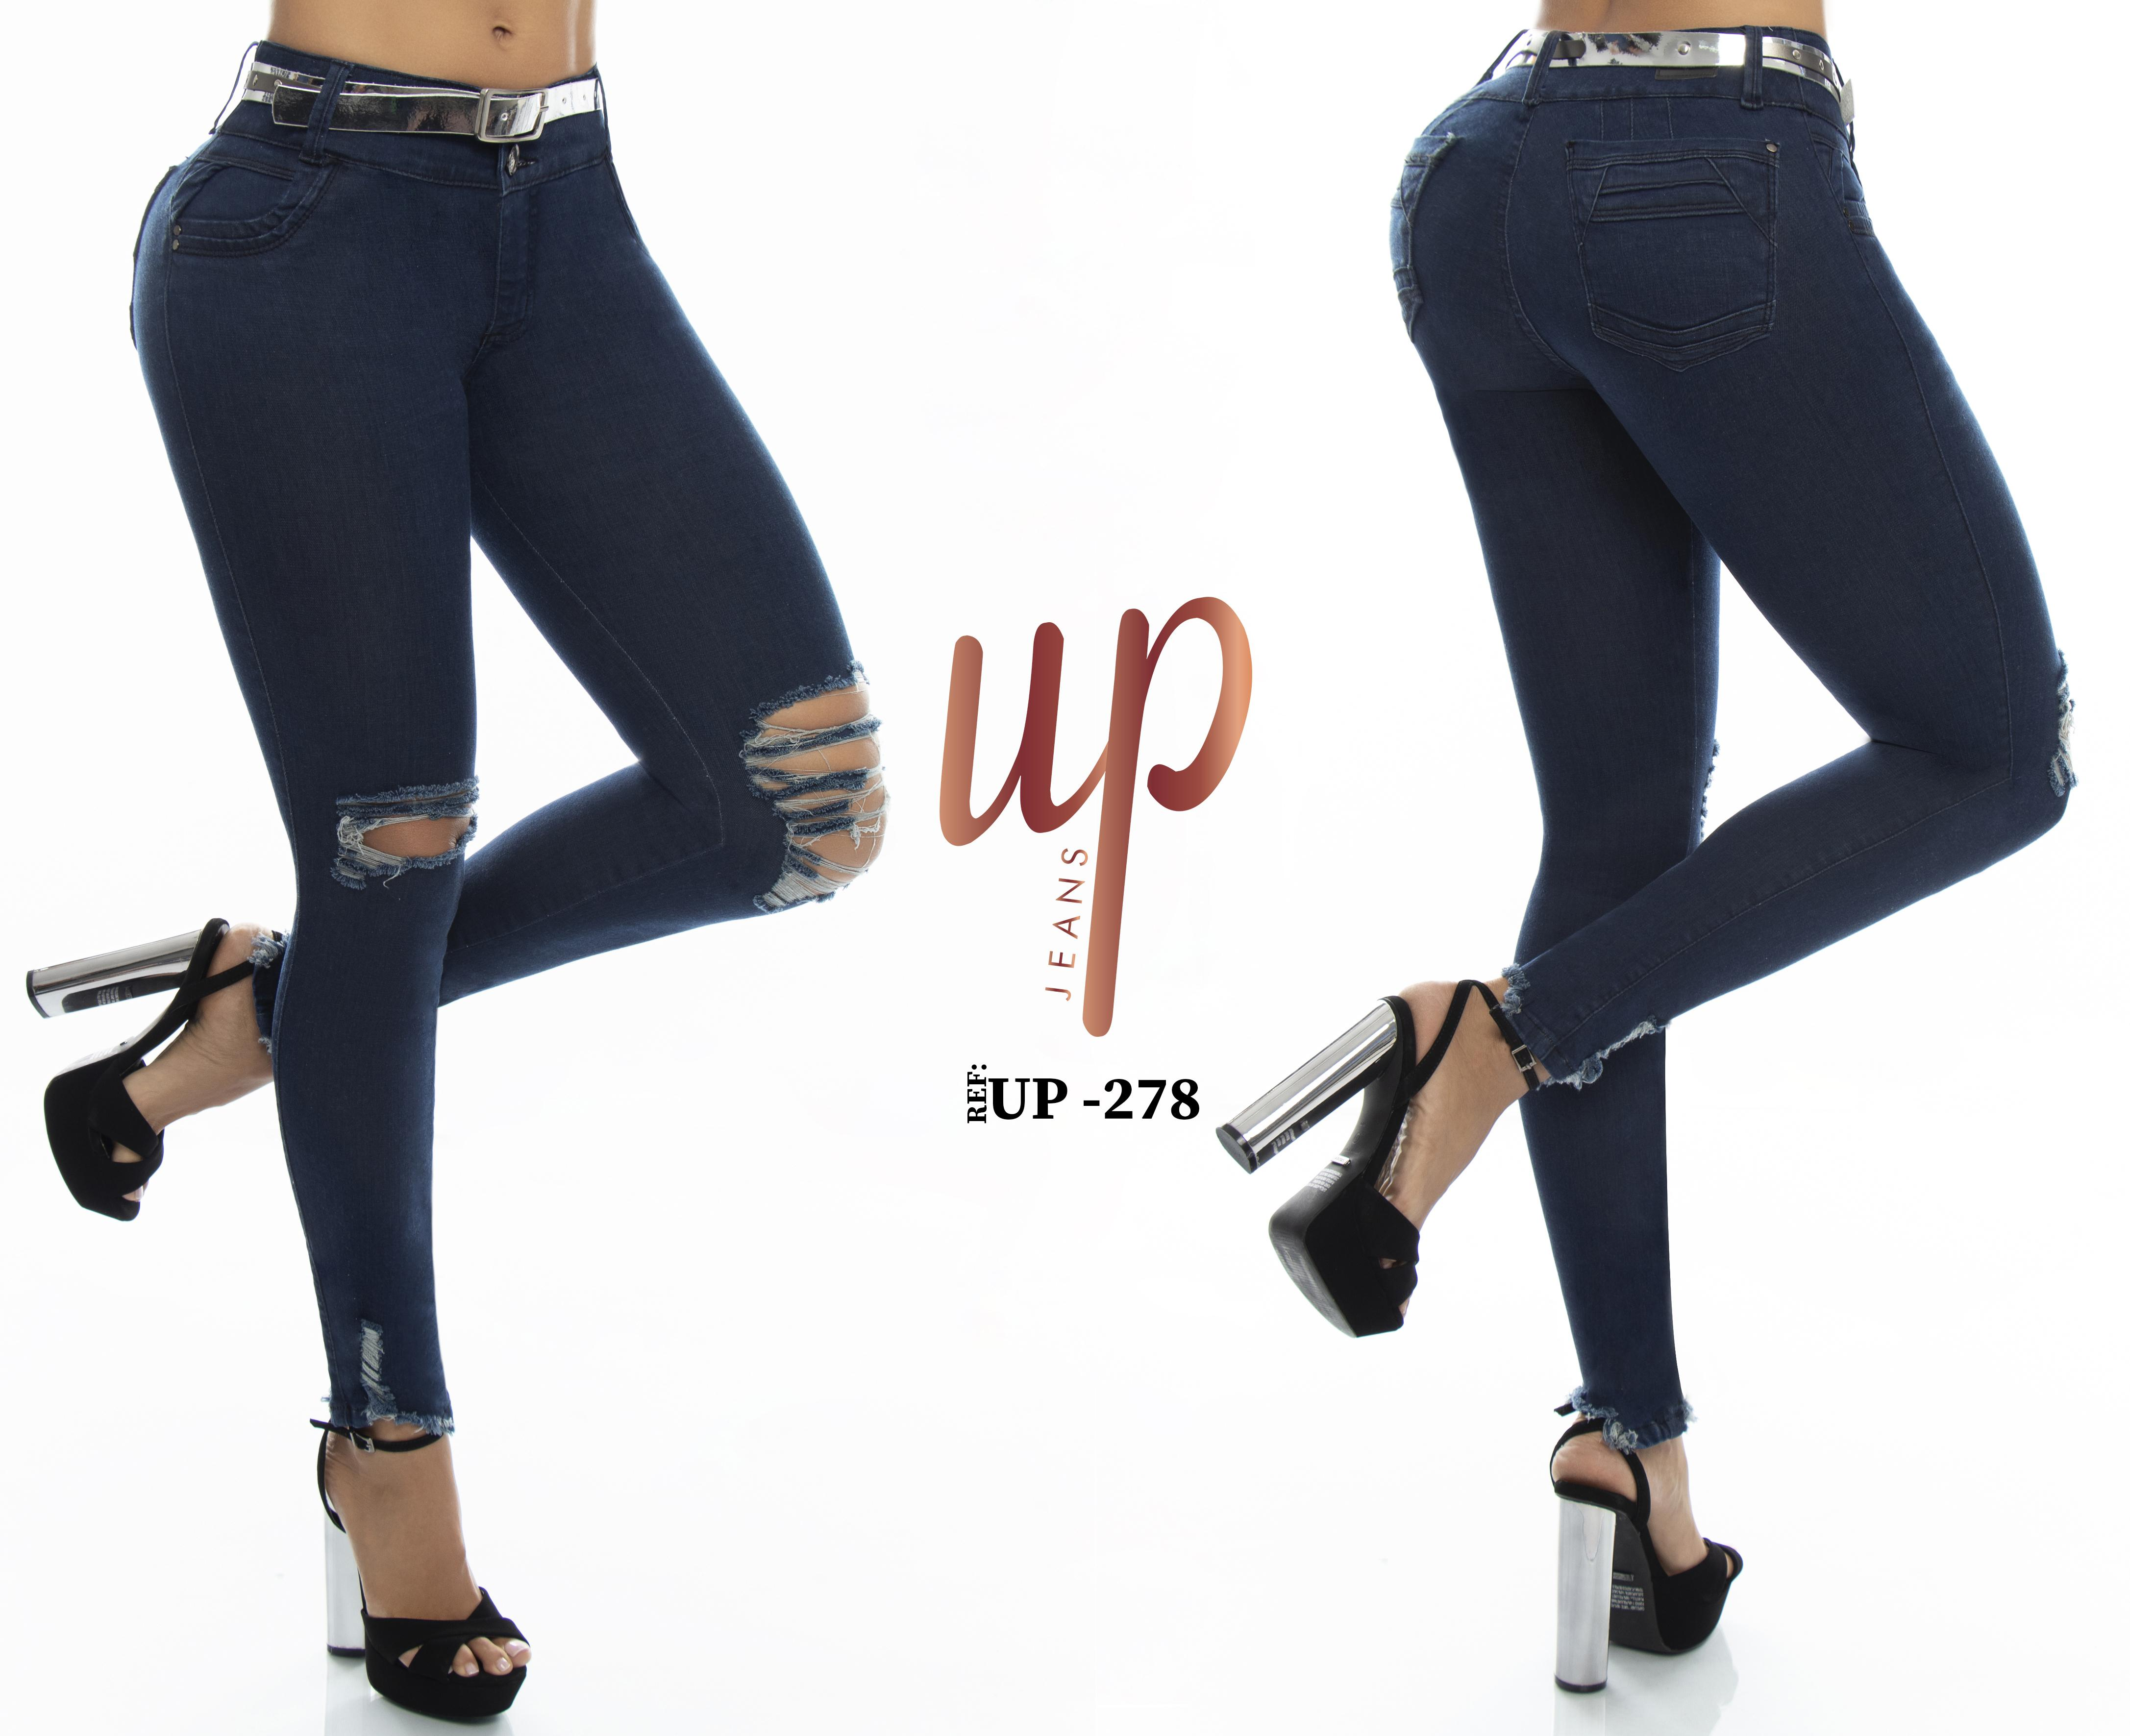 Jeans Push Up Colombiano de Moda horma perfecta